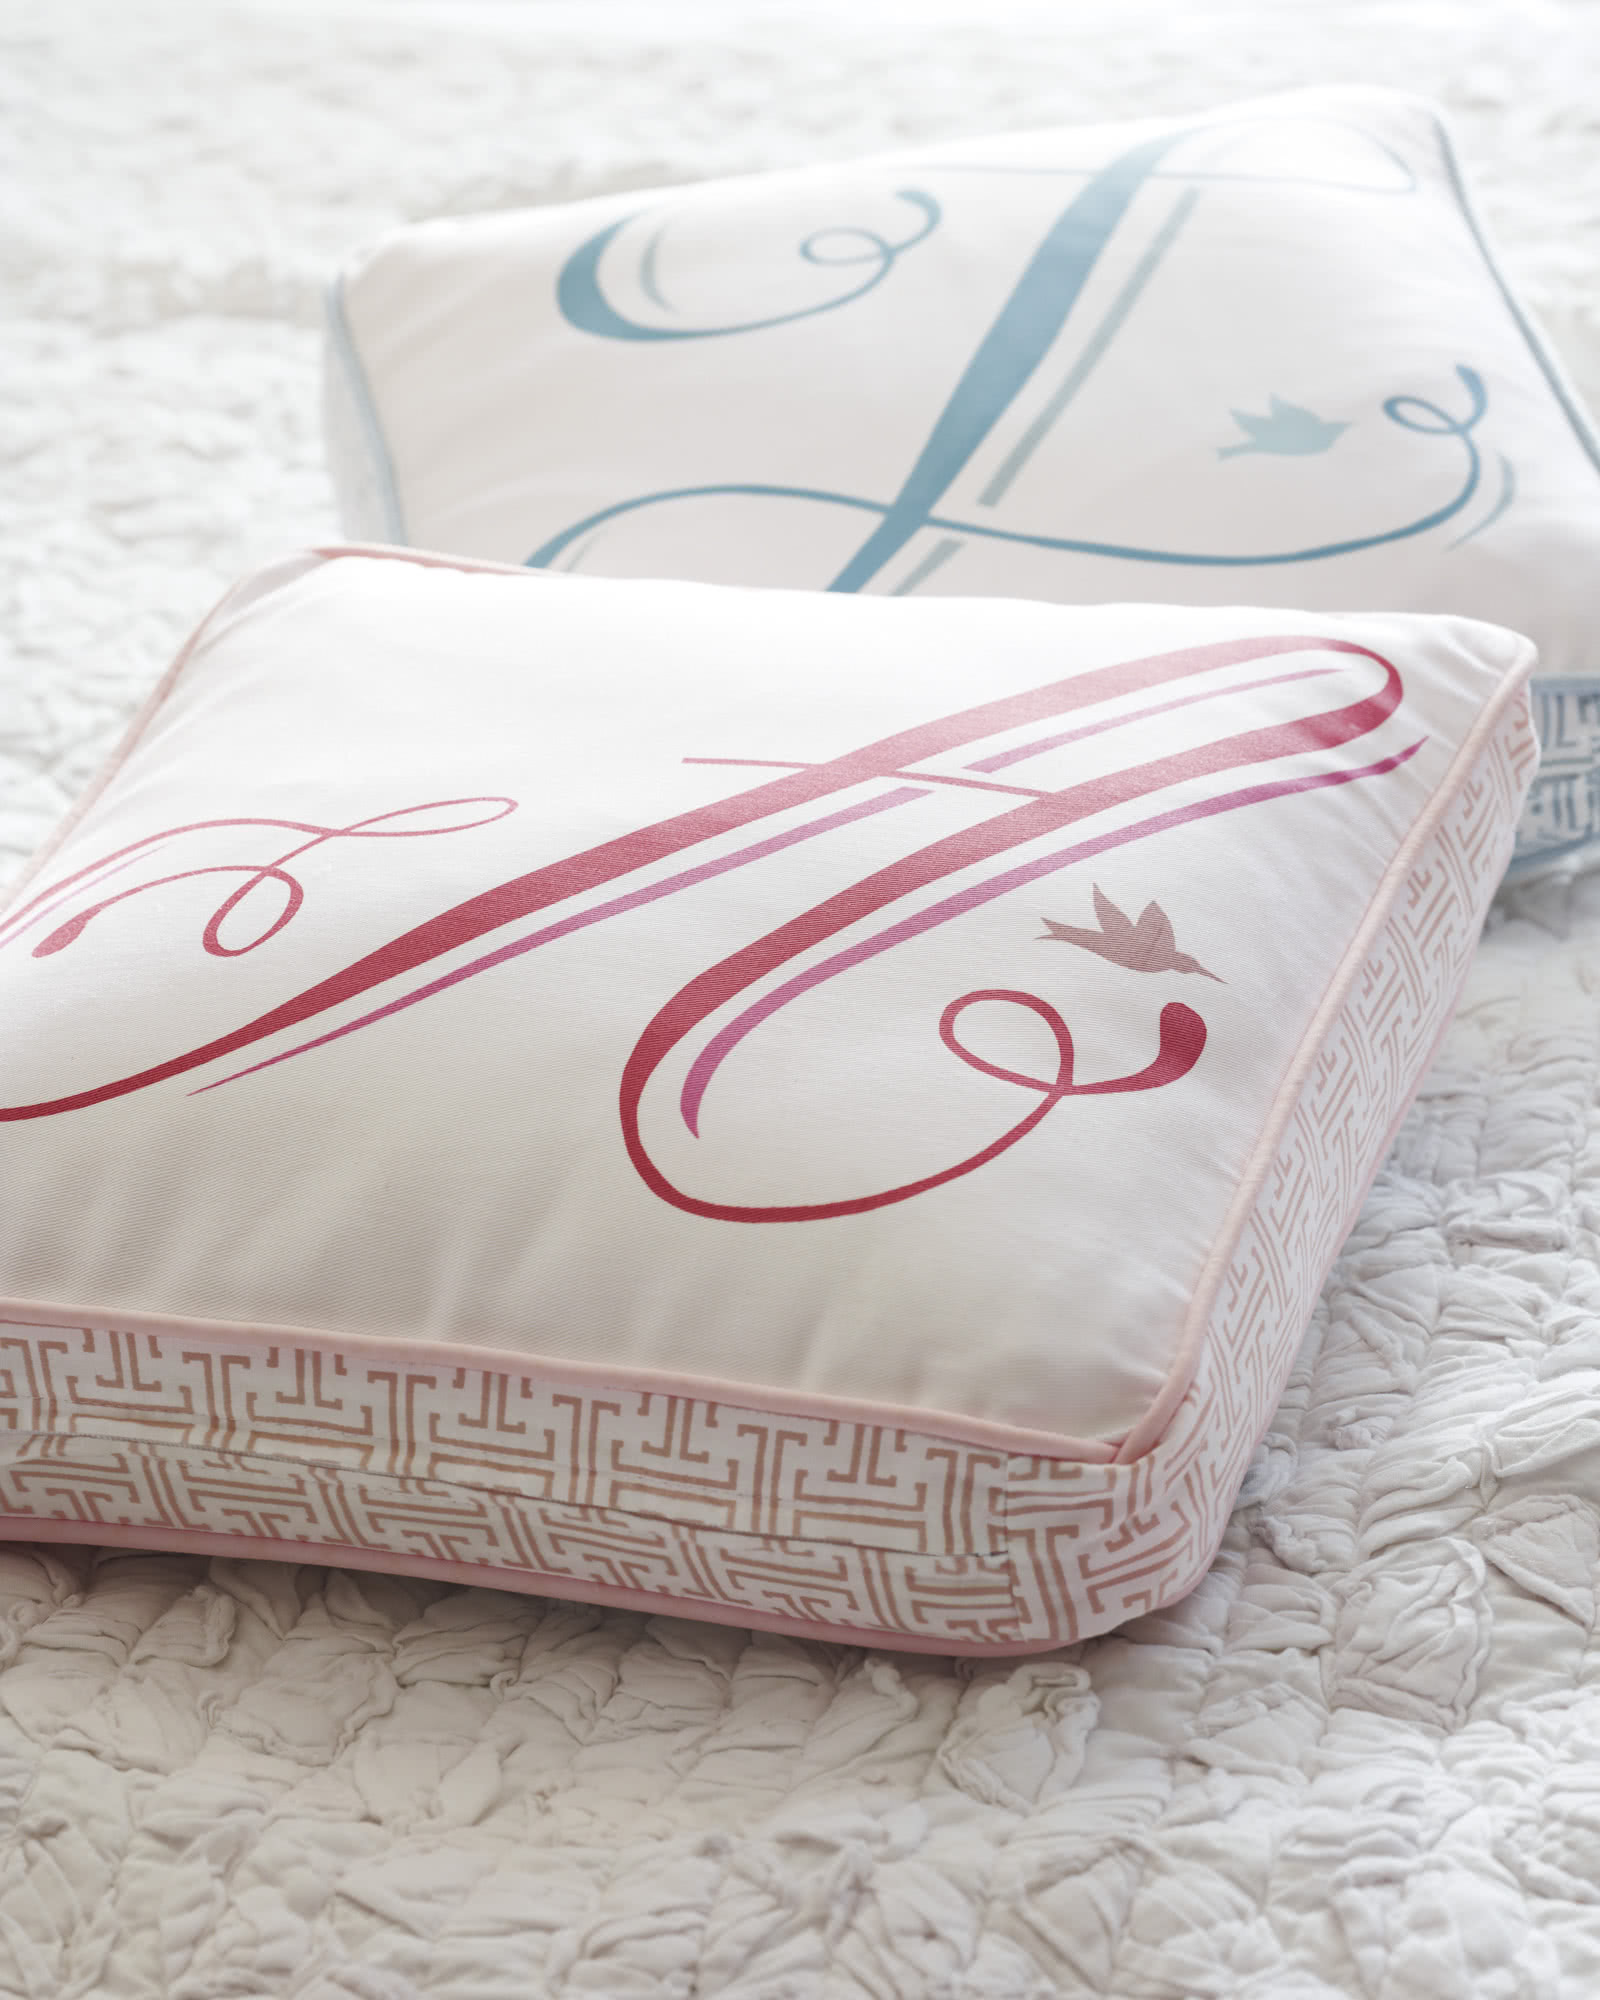 on orders pillows free over initial letter shipping overstock home garden product perfect pillow throw